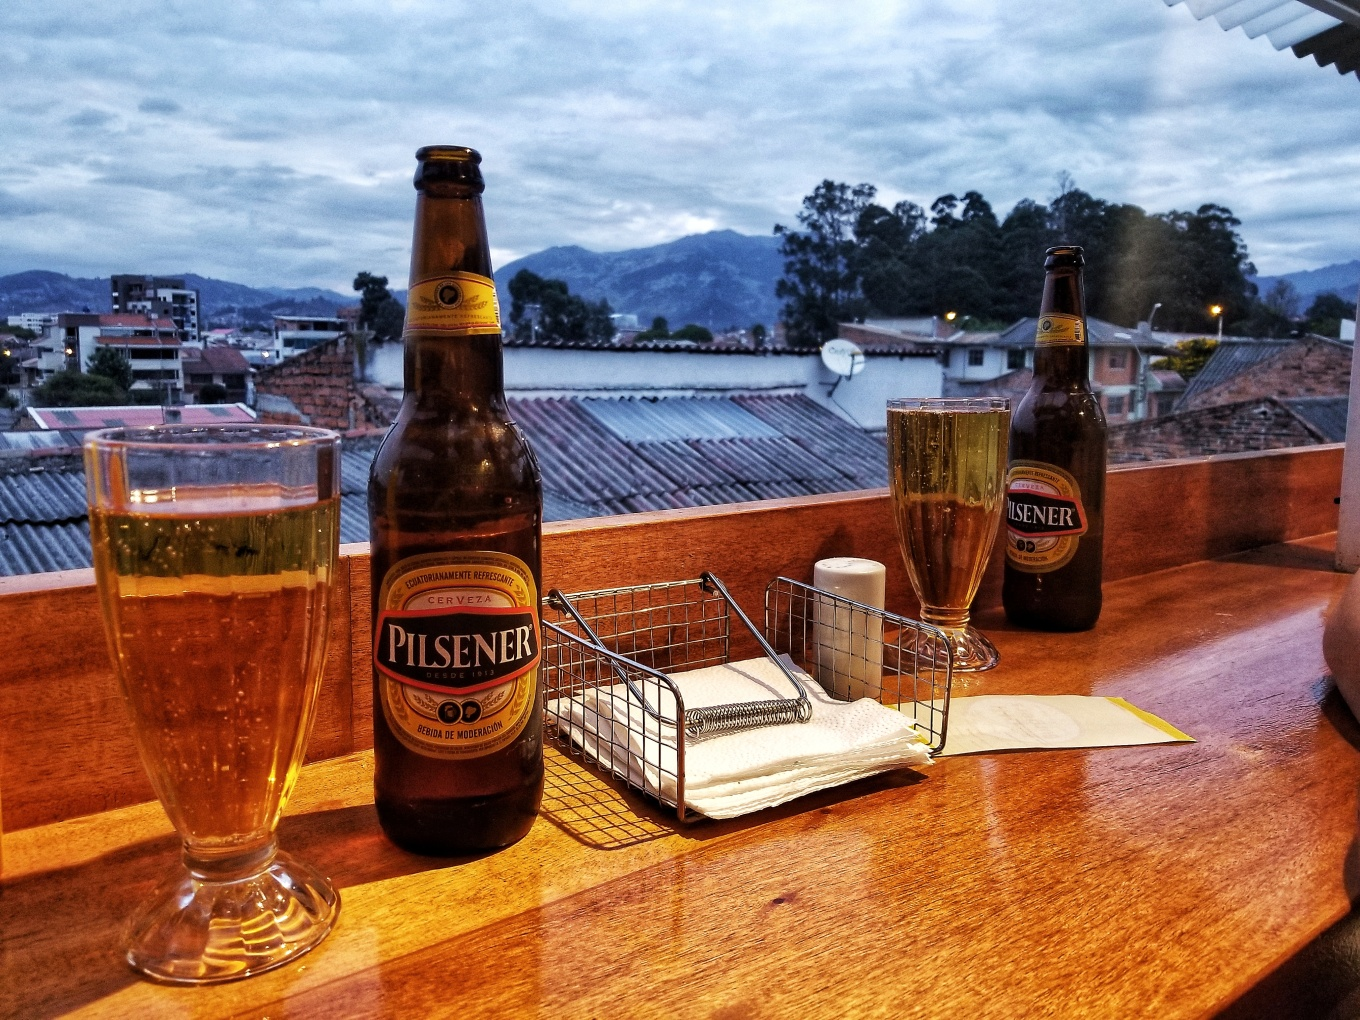 Two large bottles of Pilsener Beer in the foreground of the Andes Mountains